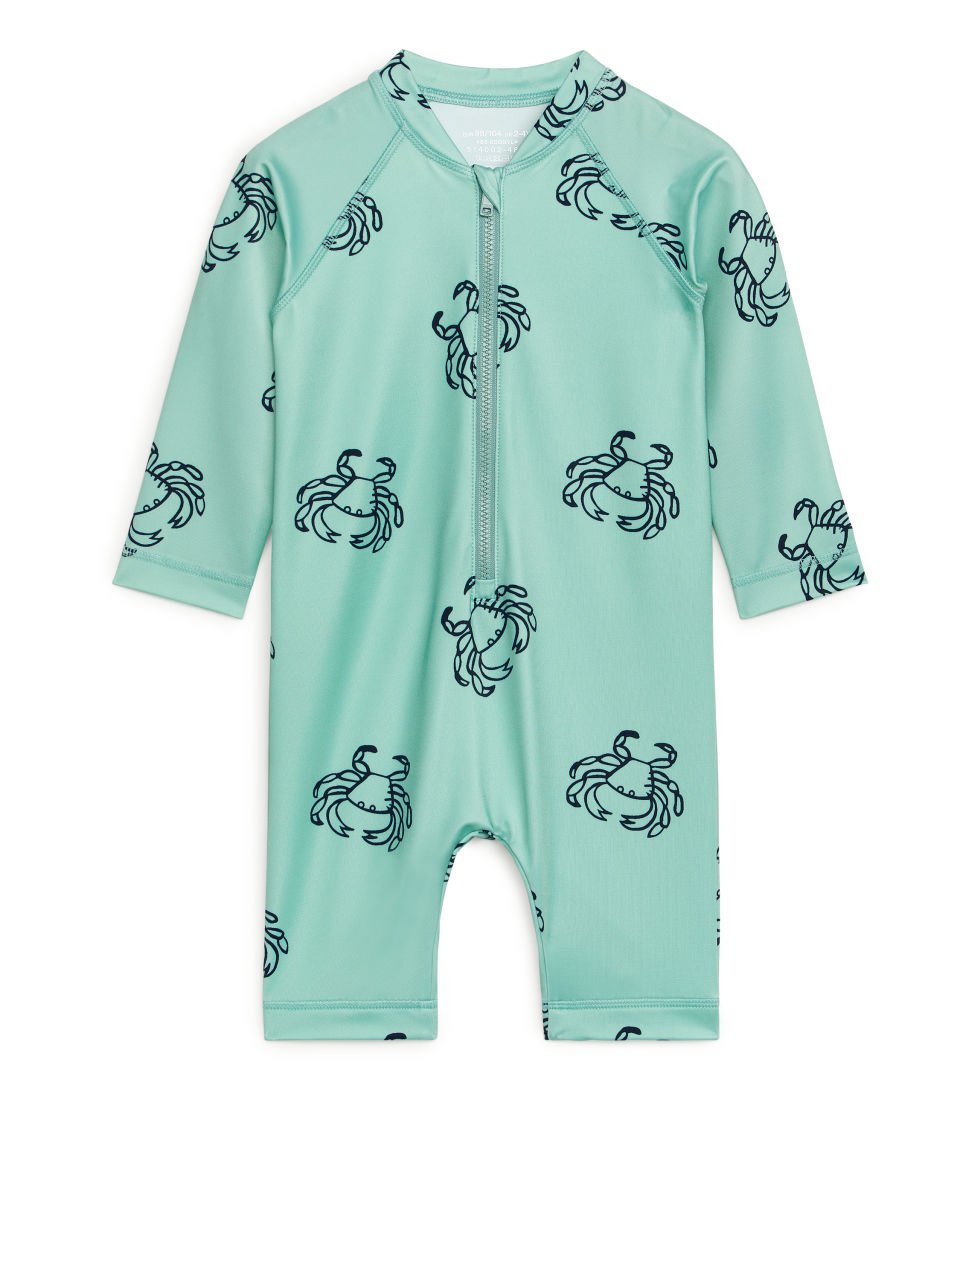 All-in-One Swimsuit UPF50 - Turquoise